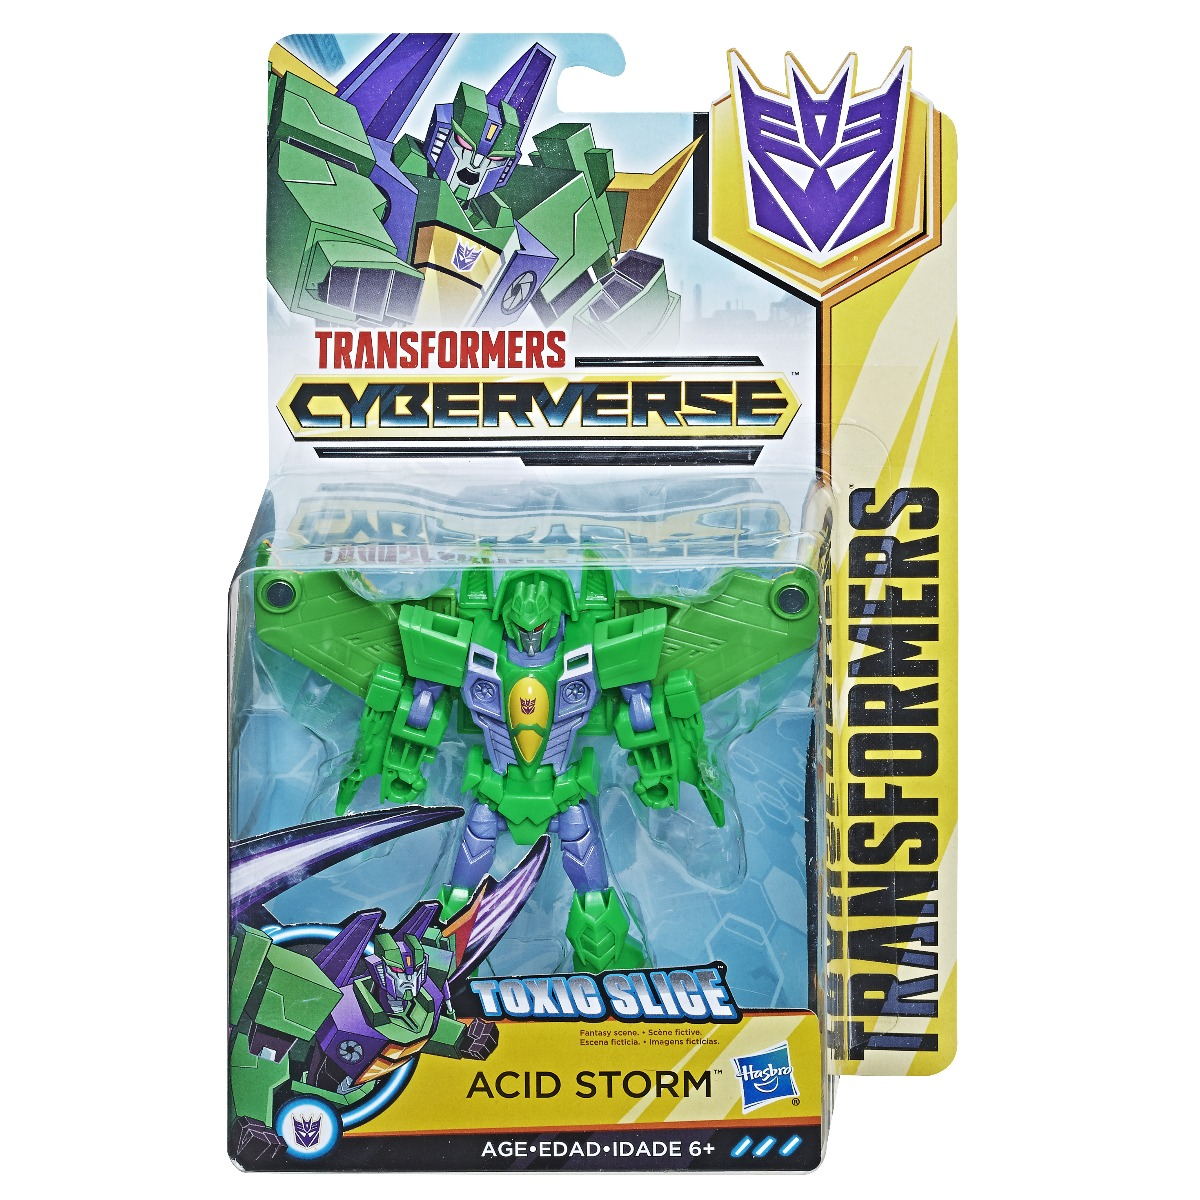 Figurina Transformers Cyberverse Action Attacaers Warrior Acid Storm